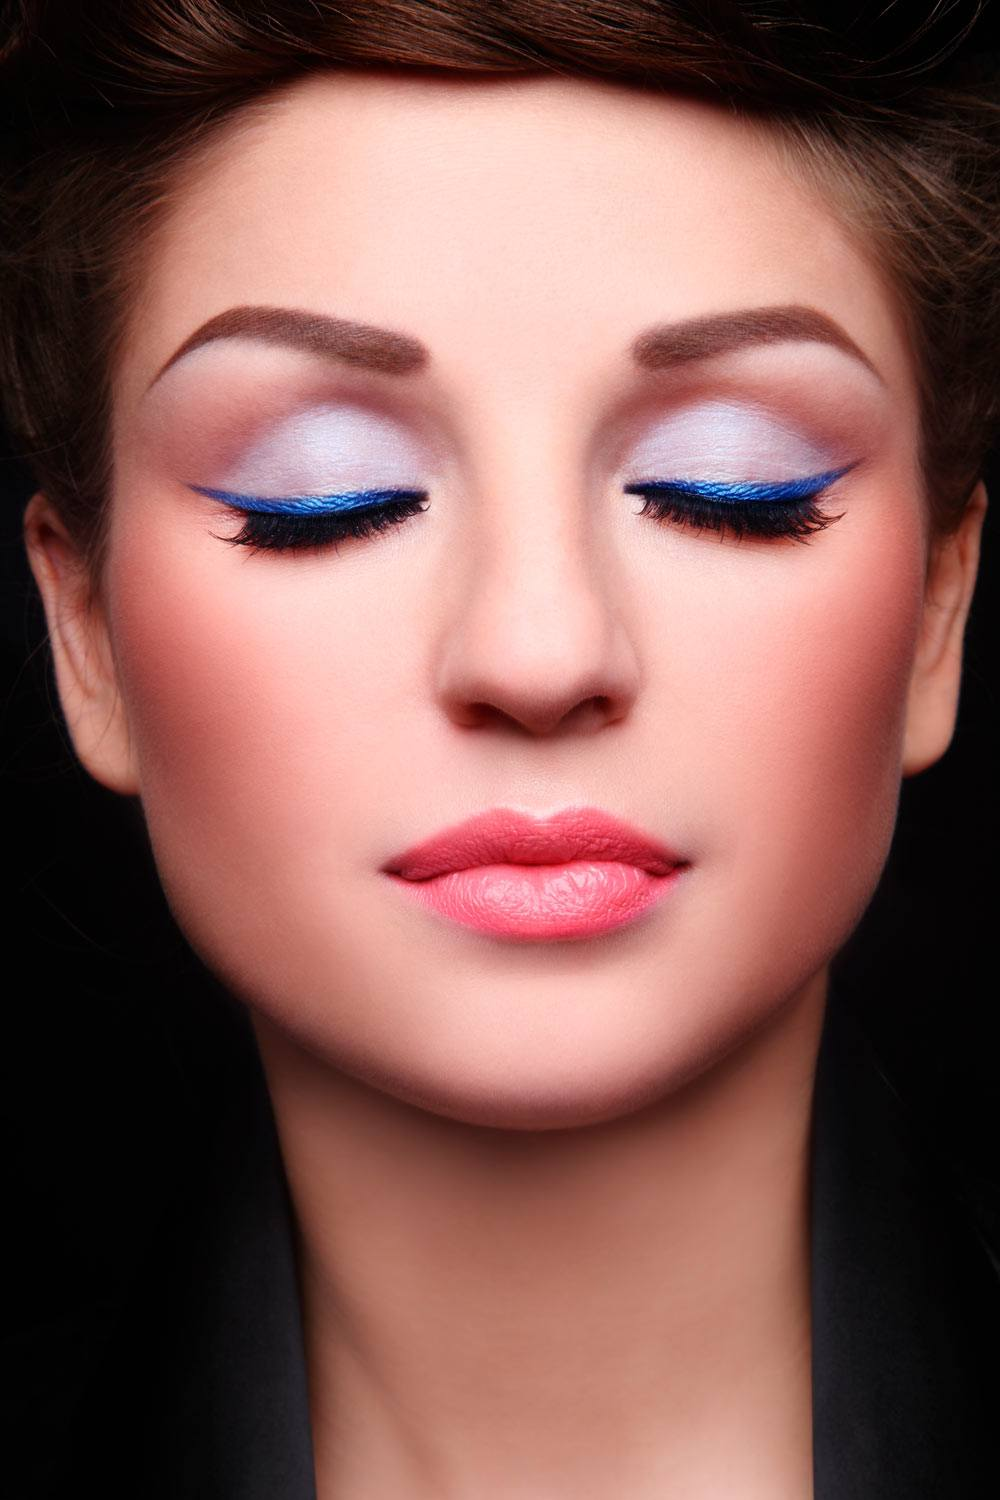 Festive Makeup Ideas with Eyeliner Accent